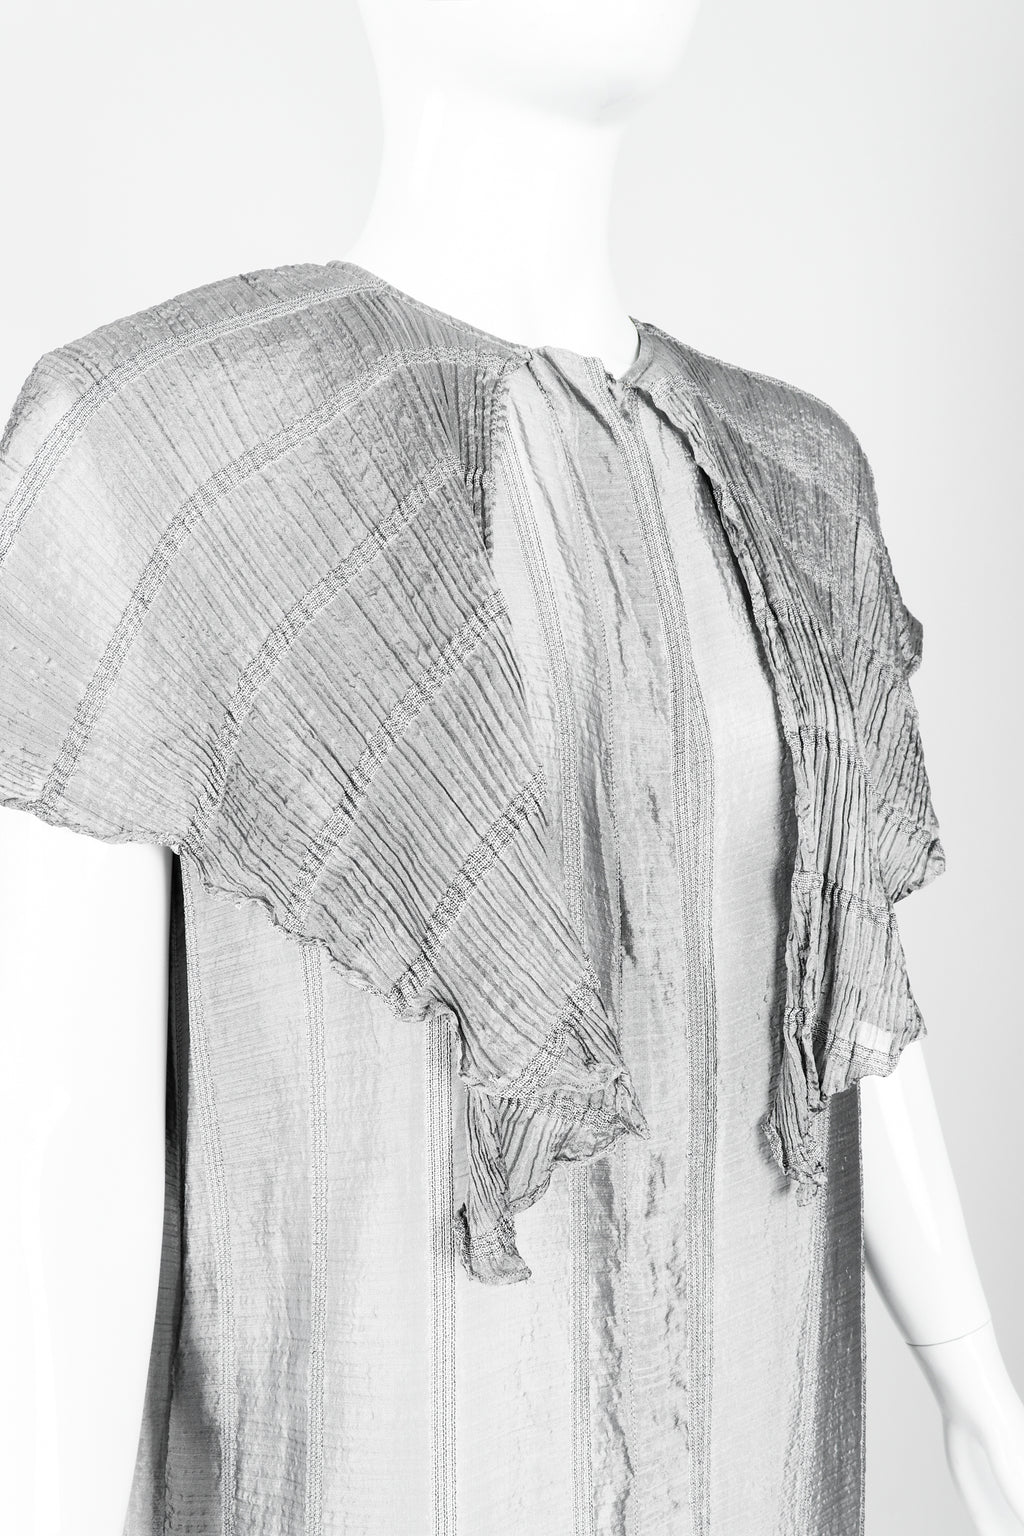 Vintage Laura Biagiotti Metallic Capelet Tunic on Mannequin Neck detail at Recess Los Angeles